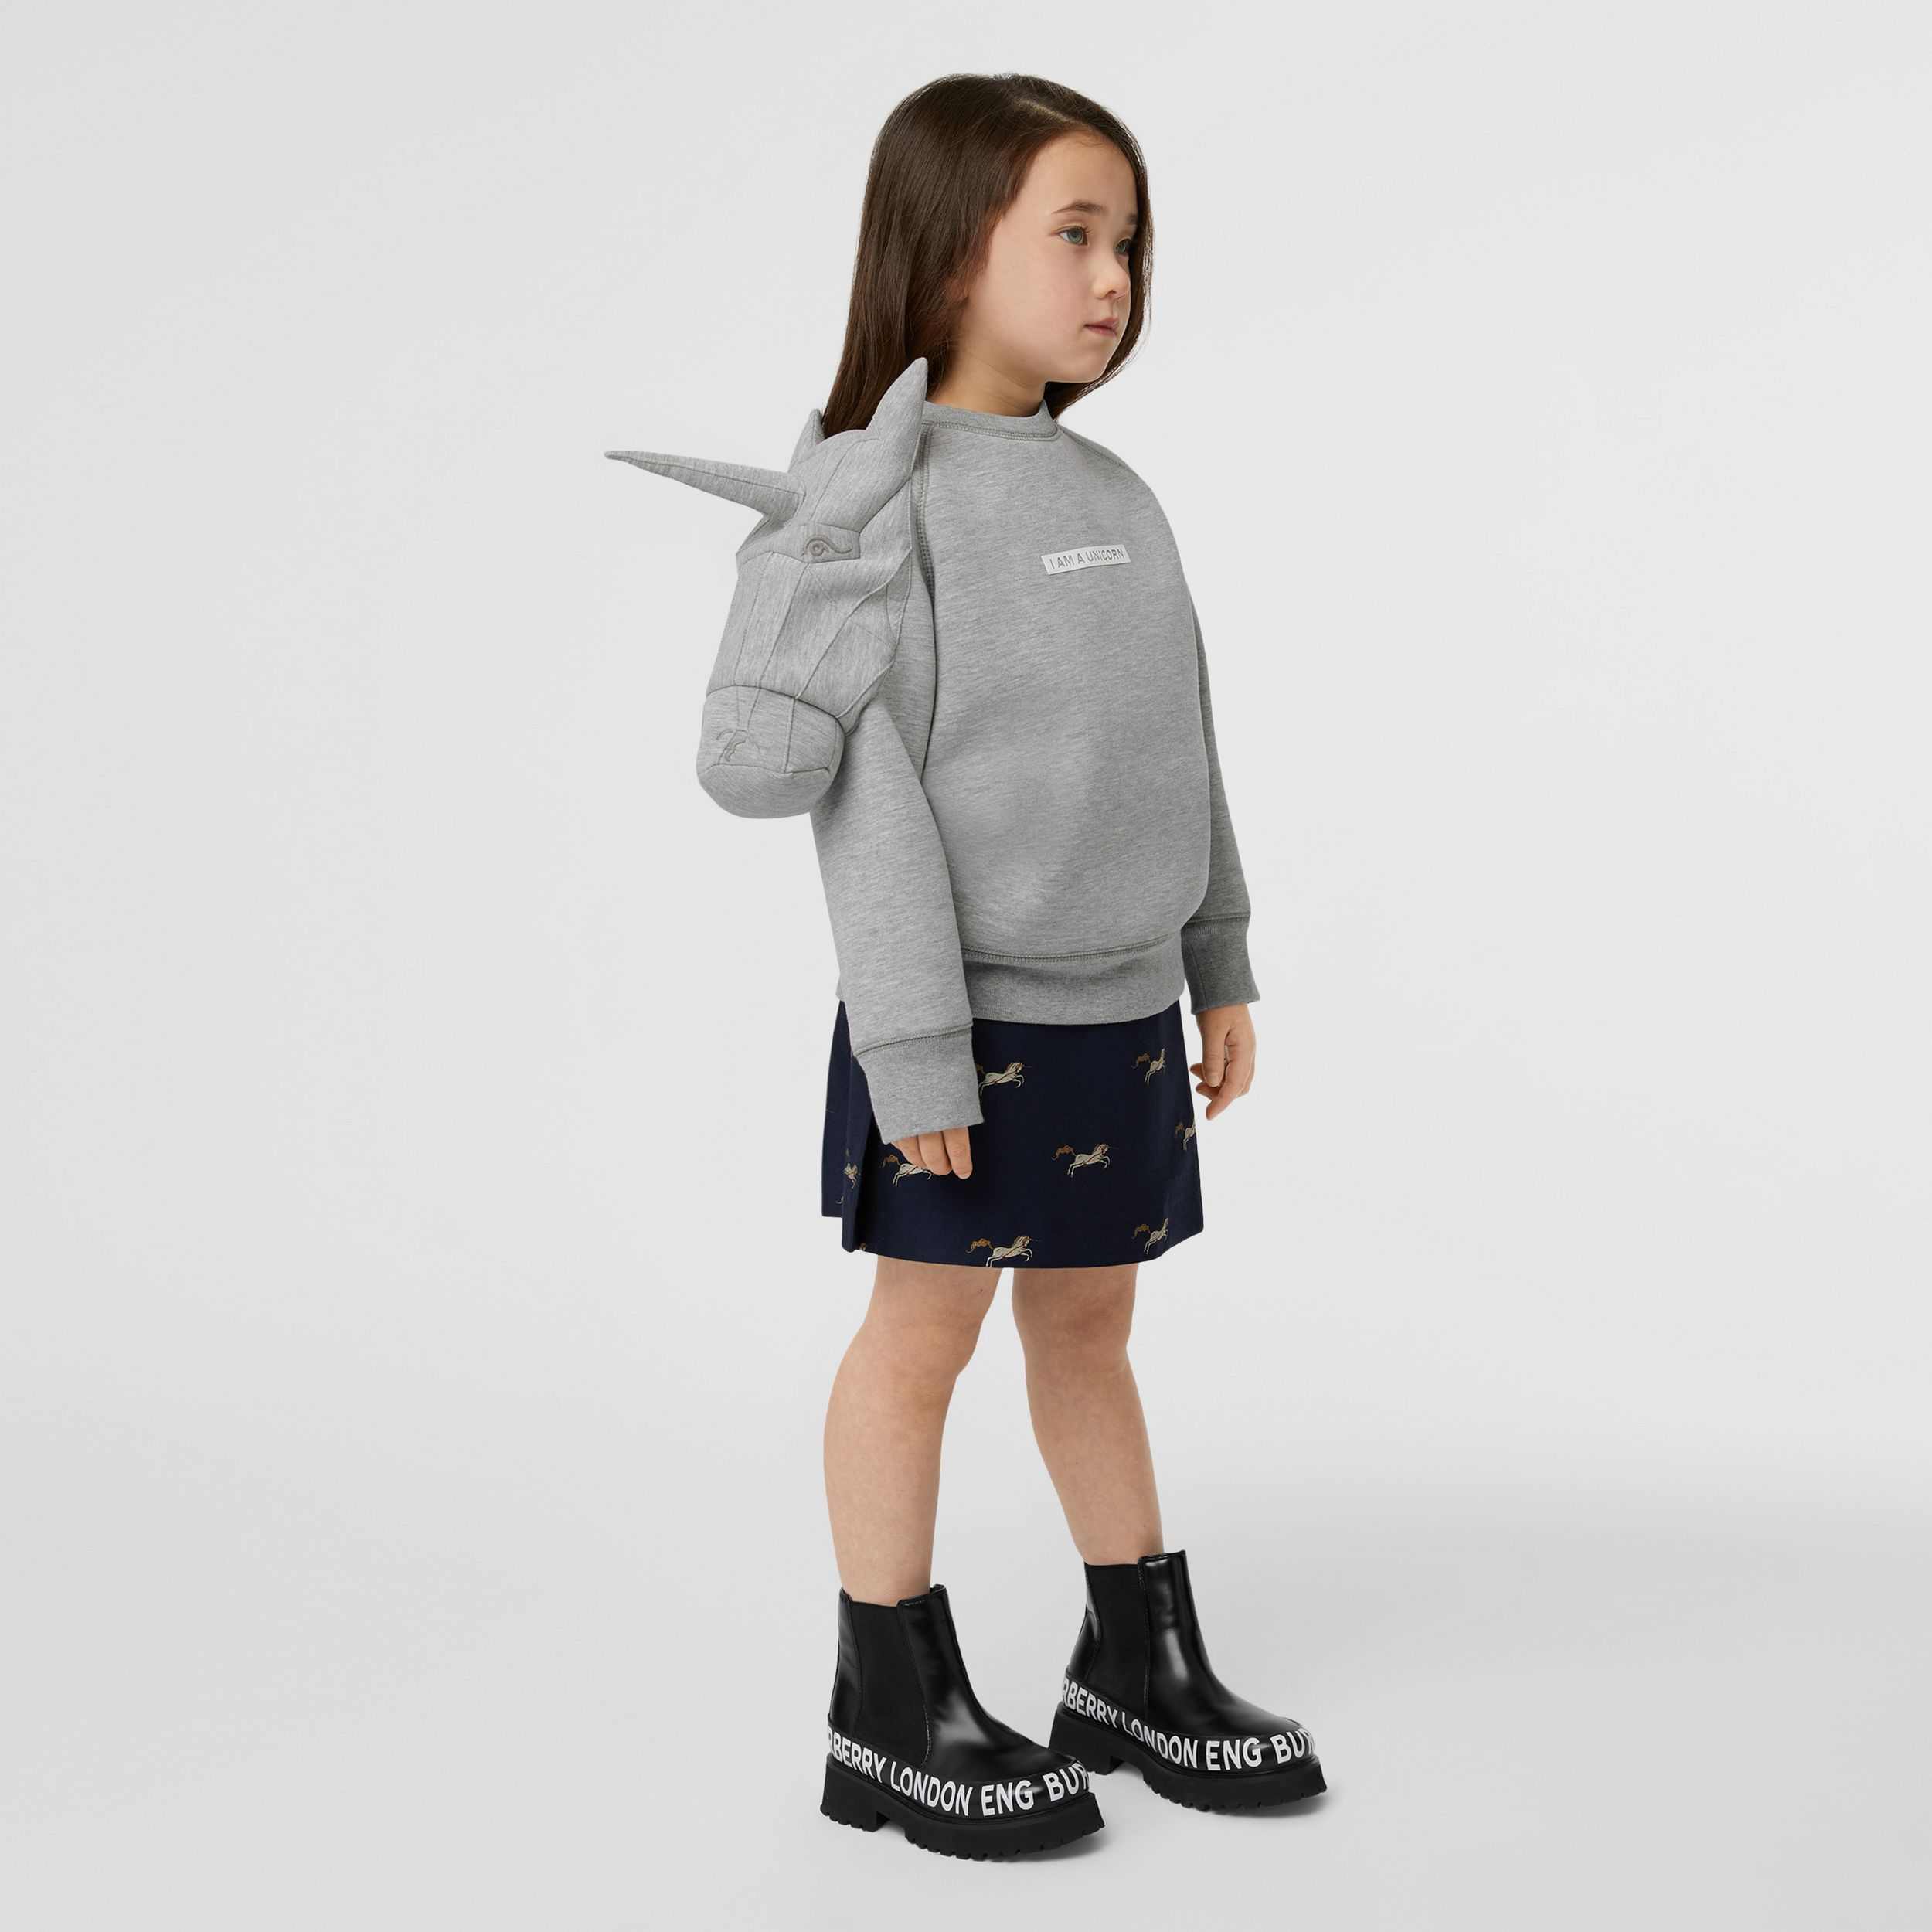 3D Unicorn Sweatshirt – Online Exclusive in Grey Melange | Burberry - 3